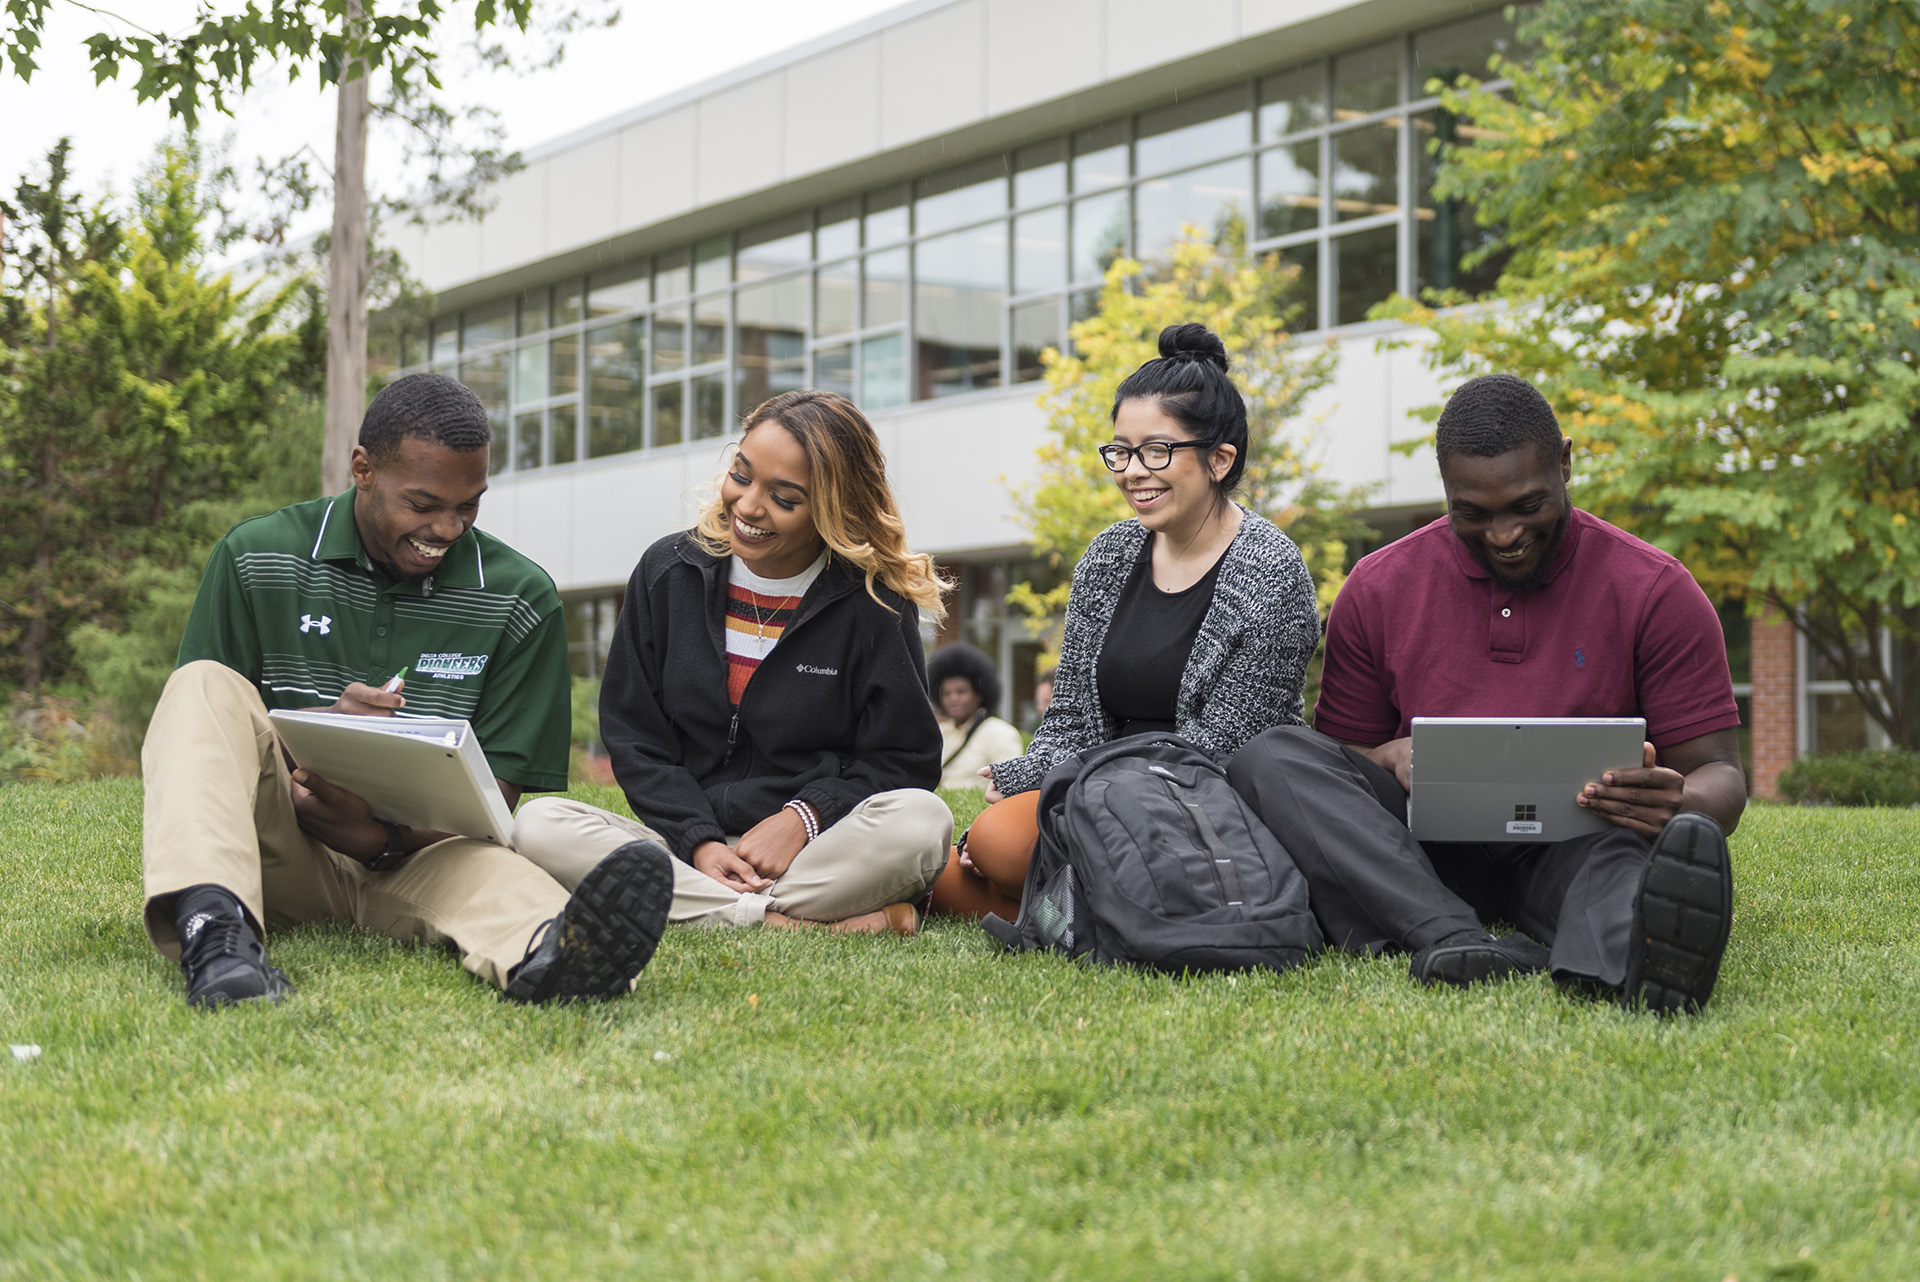 Delta College students working outside in the grass.